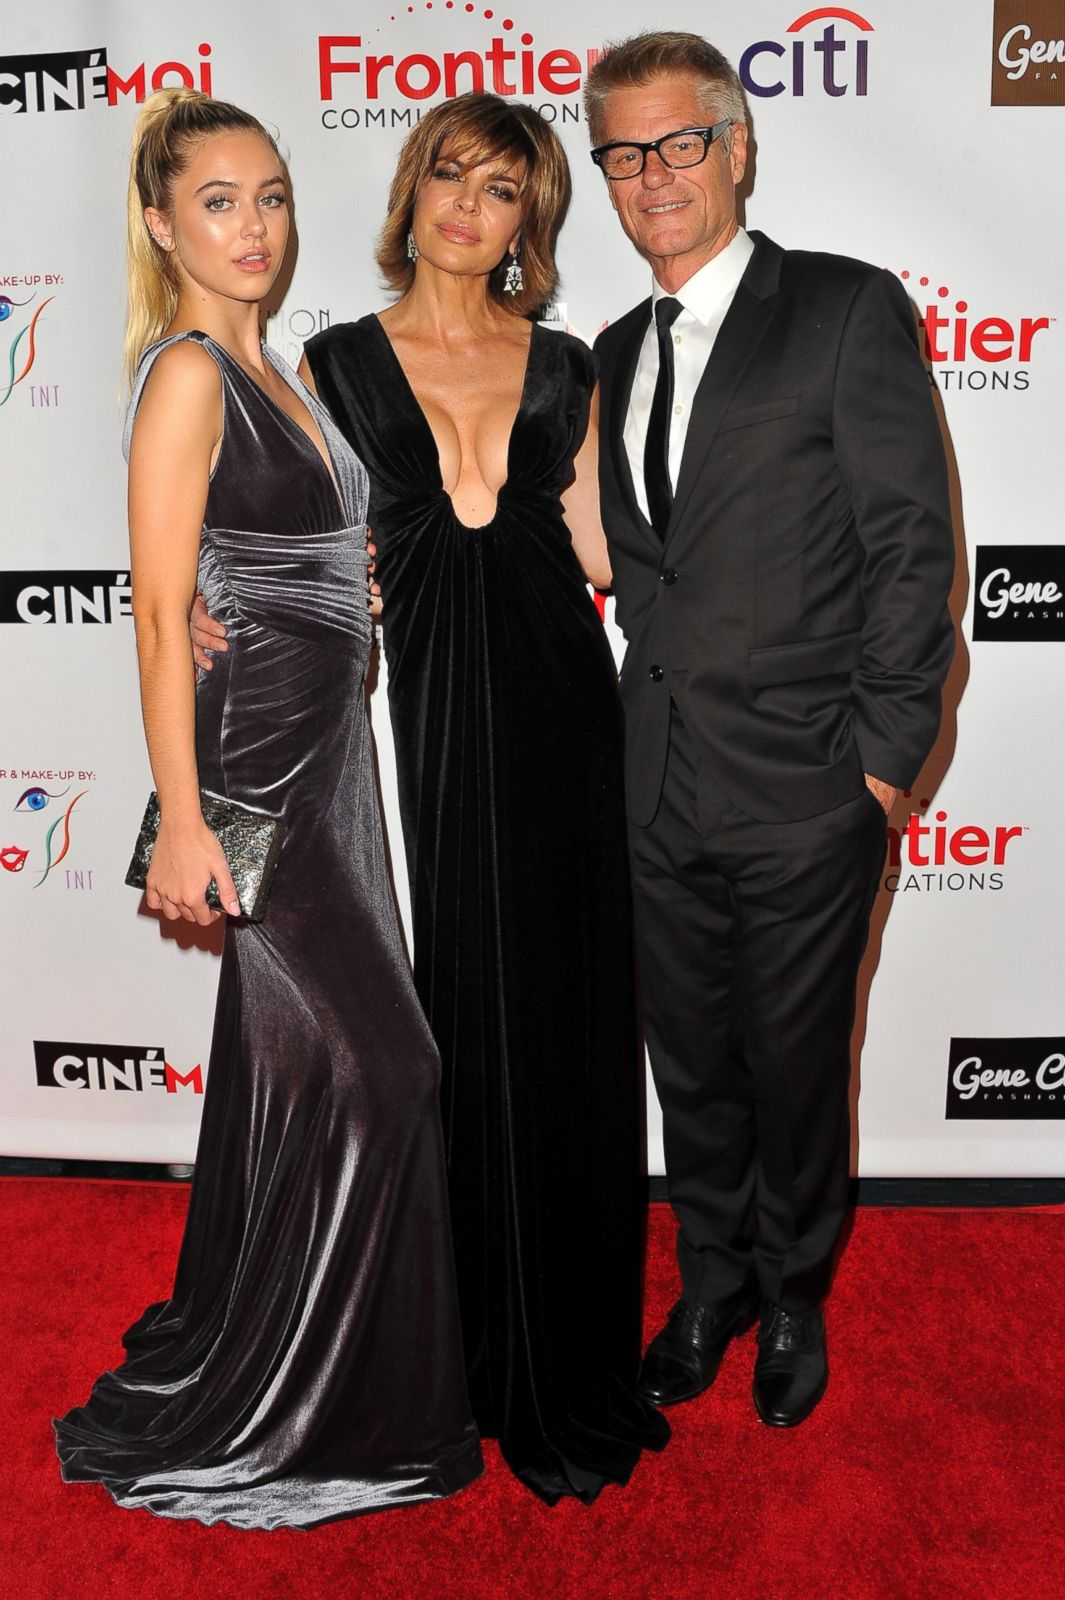 Lisa Rinna And Her Family Hit The Red Carpet Picture